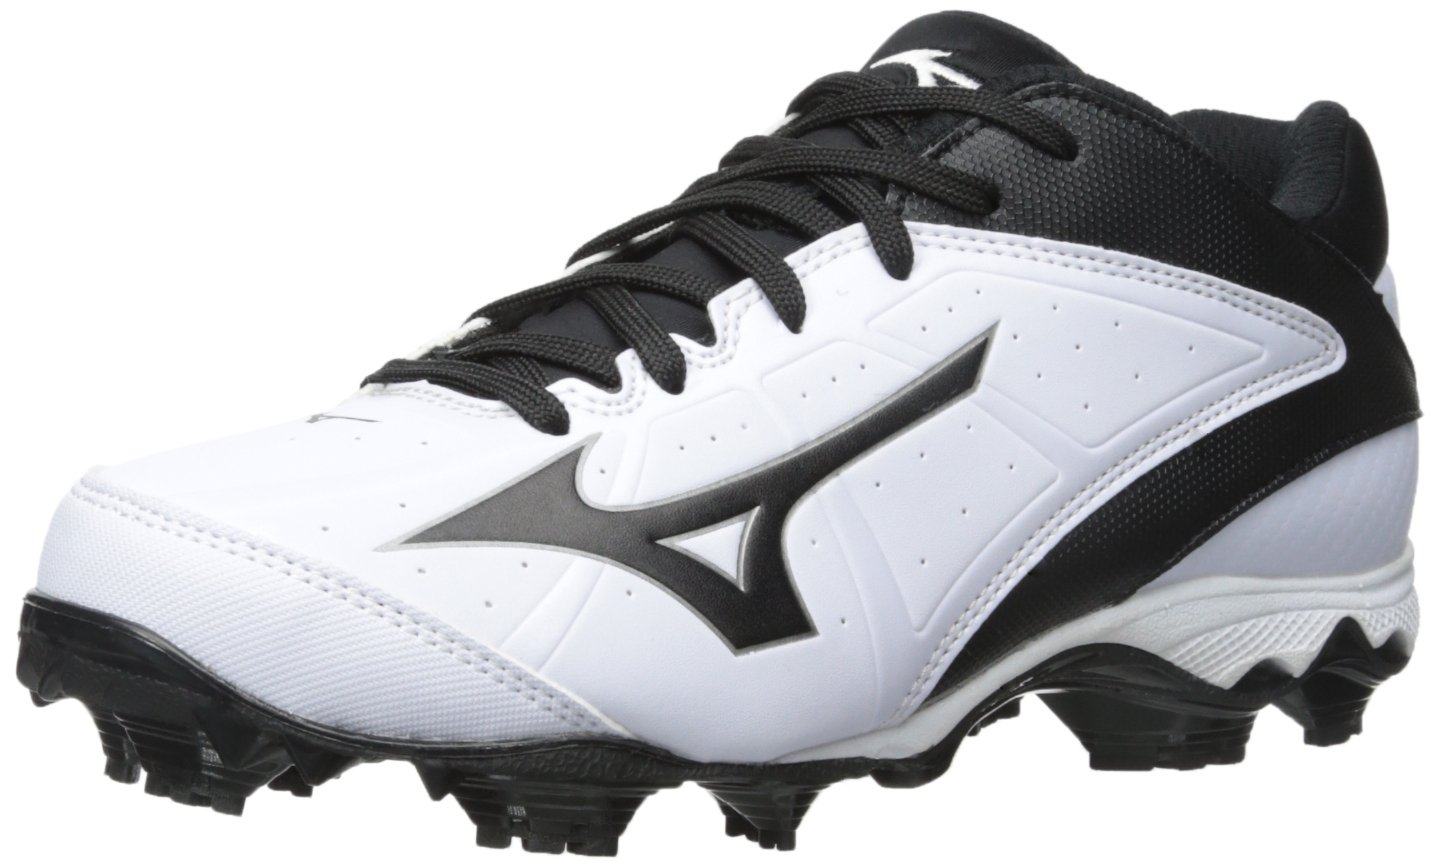 Mizuno Women's 9 Spike ADV Finch Elite 2 Fast Pitch Molded Softball Cleat B00ZBBSLCC 6 B(M) US|White/Black